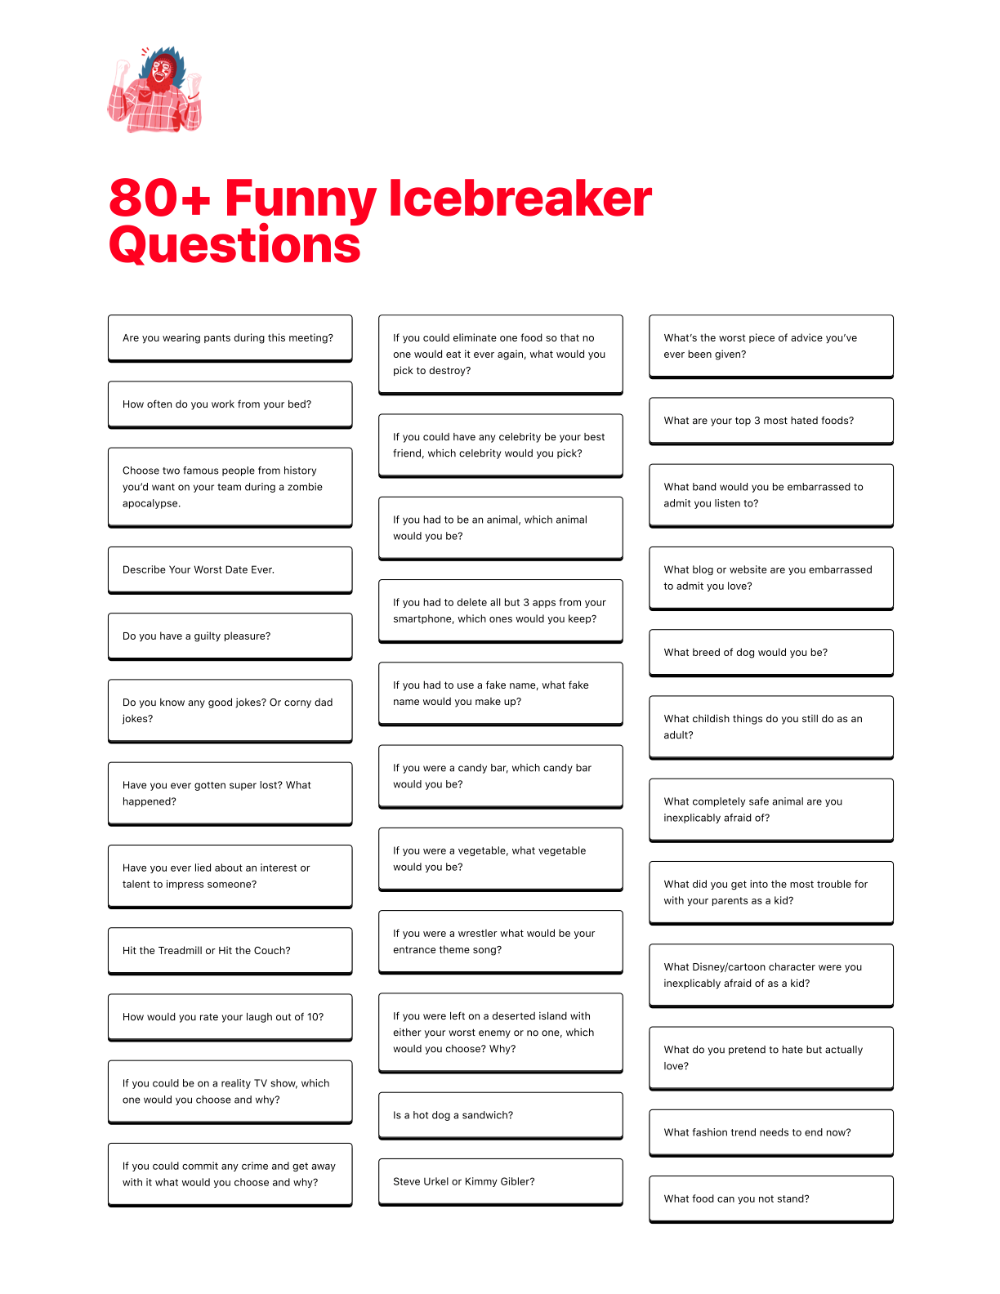 70 Funny Icebreaker Questions Free Pdf Icebreakers Io Ice Breaker Questions Funny Icebreaker Questions This Or That Questions [ 1294 x 1000 Pixel ]